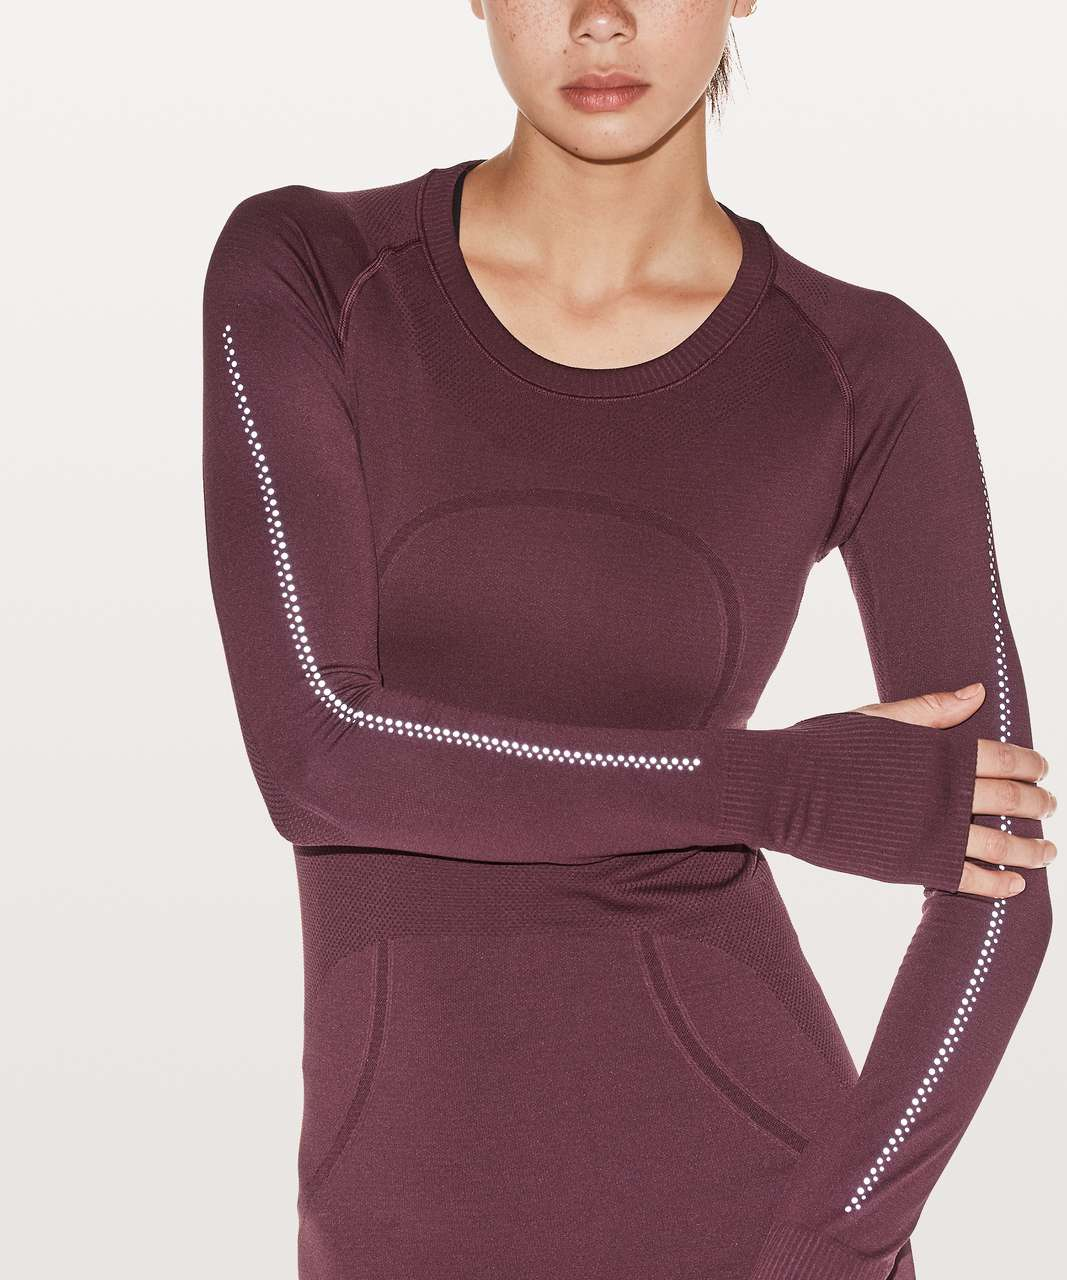 Lululemon Swiftly Tech Long Sleeve Crew Reflective - Redwood